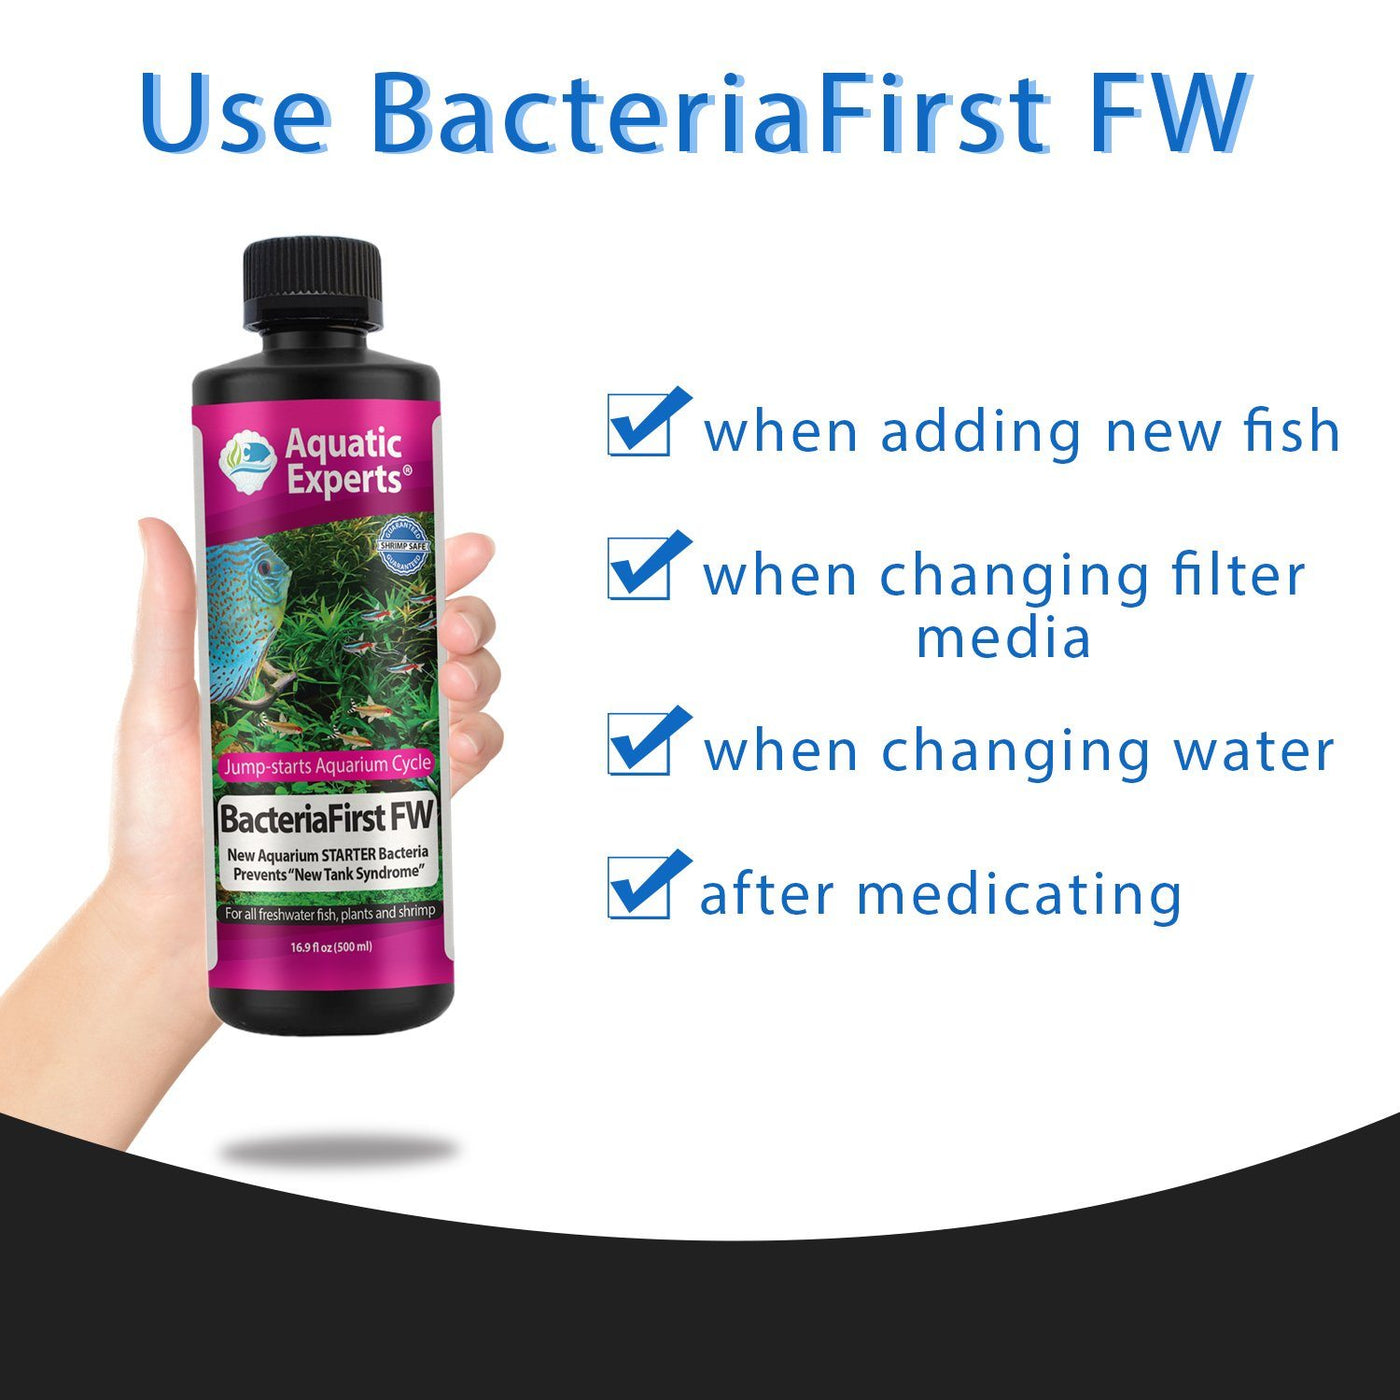 BacteriaFirst Freshwater Aquarium Bacteria Starter – Quick Start Aquarium with Beneficial Nitrifying Bacteria, Premium Fish Tank Bacteria Prevents New Tank Syndrome - Aquatic Experts